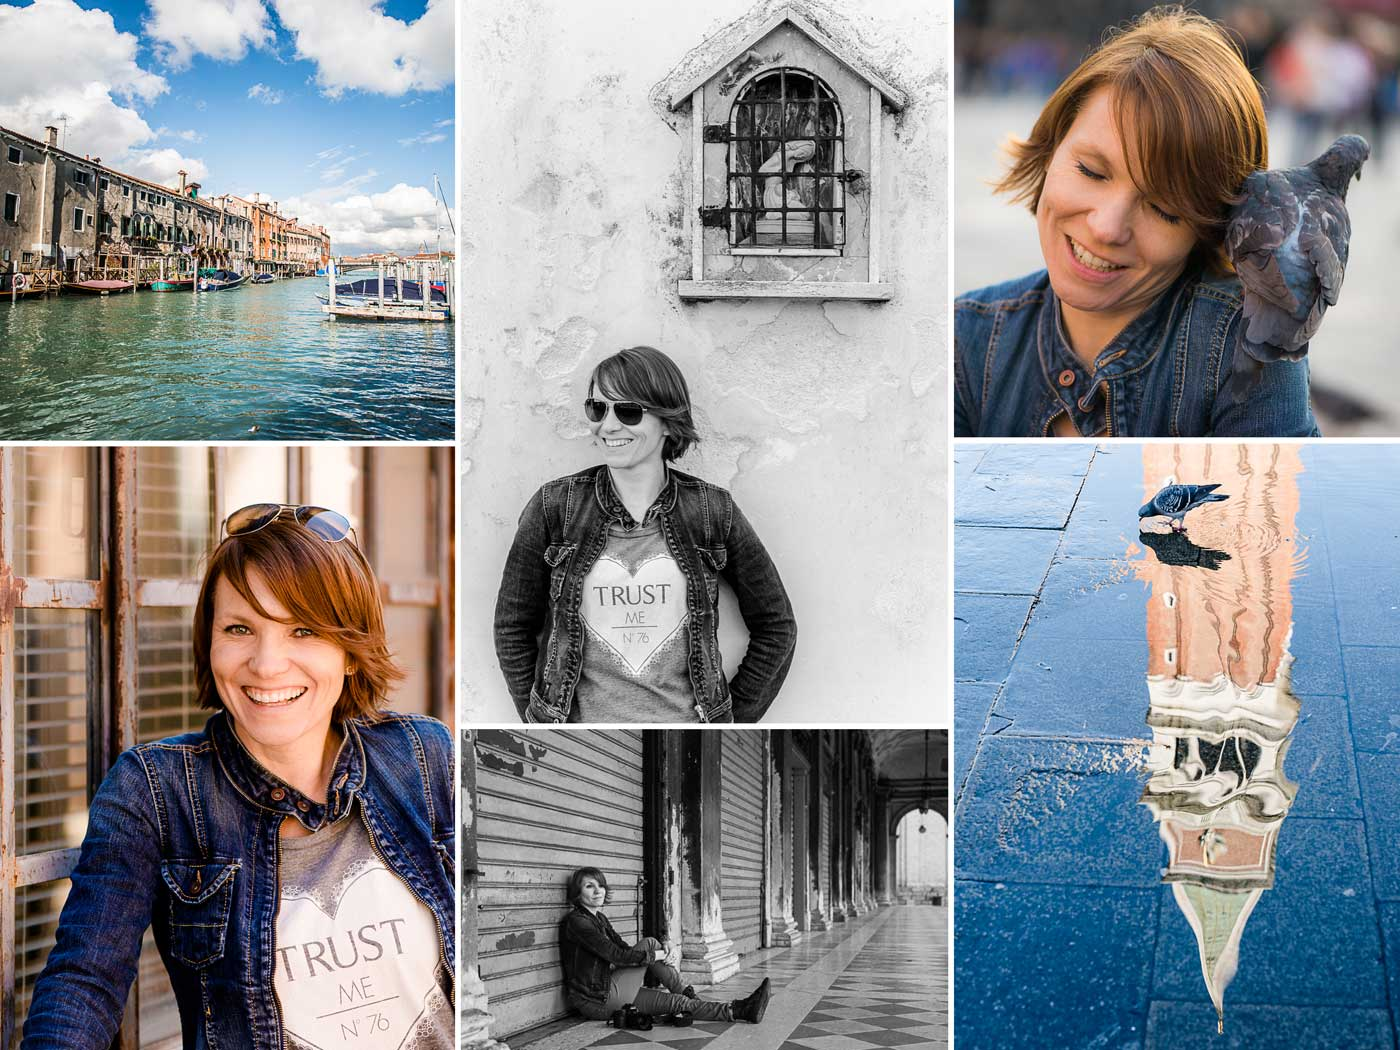 Portraitshooting | Fotografin in Venedig